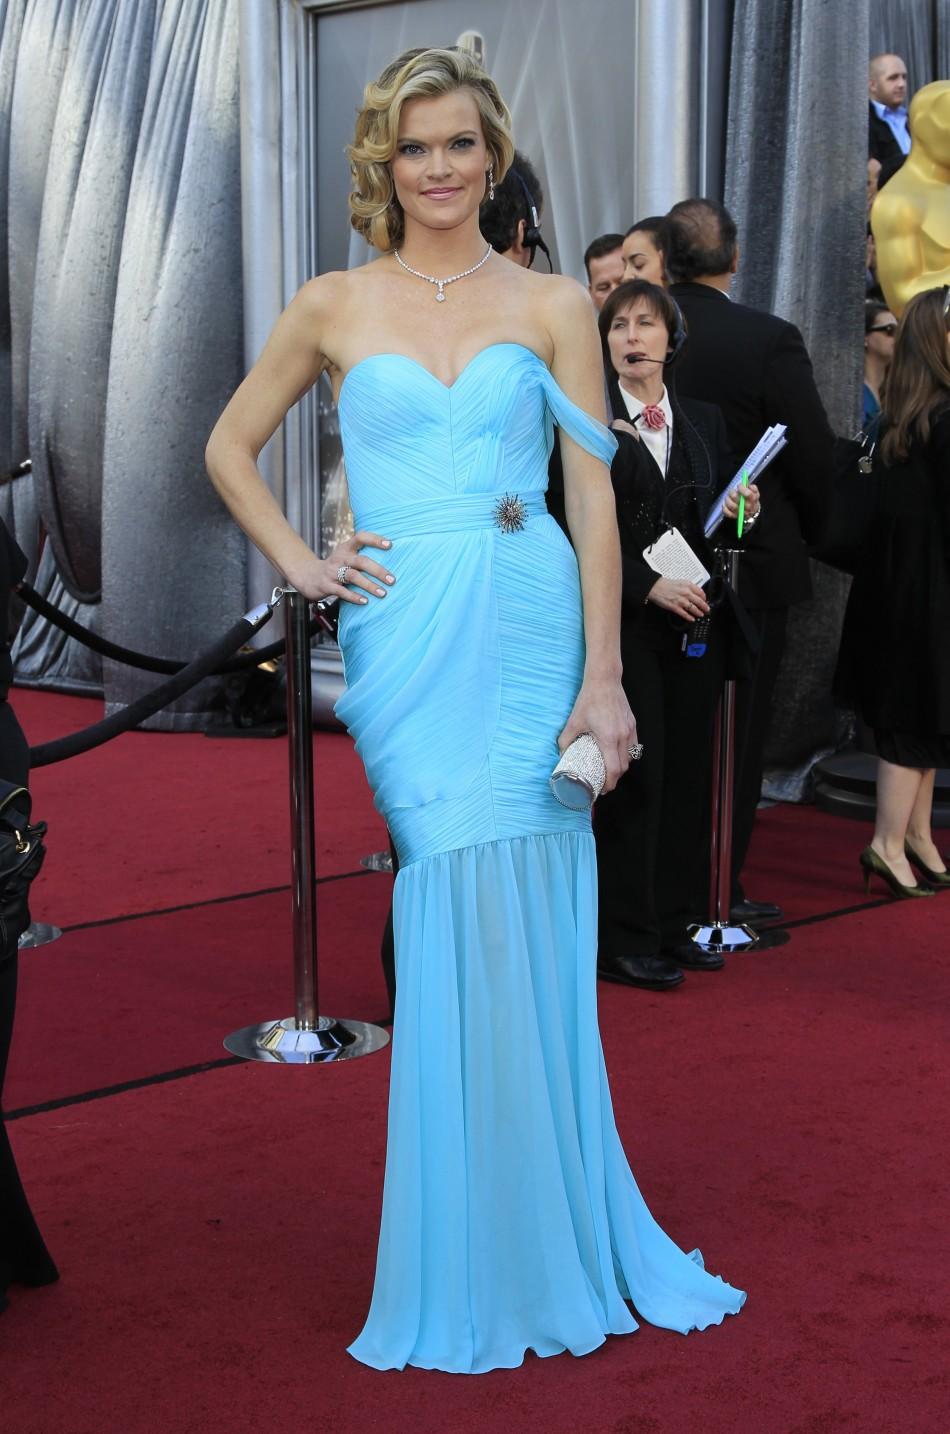 Actress Missi Pyle from the film The Artist arrives at the 84th Academy Awards in Hollywood, California, February 26, 2012.